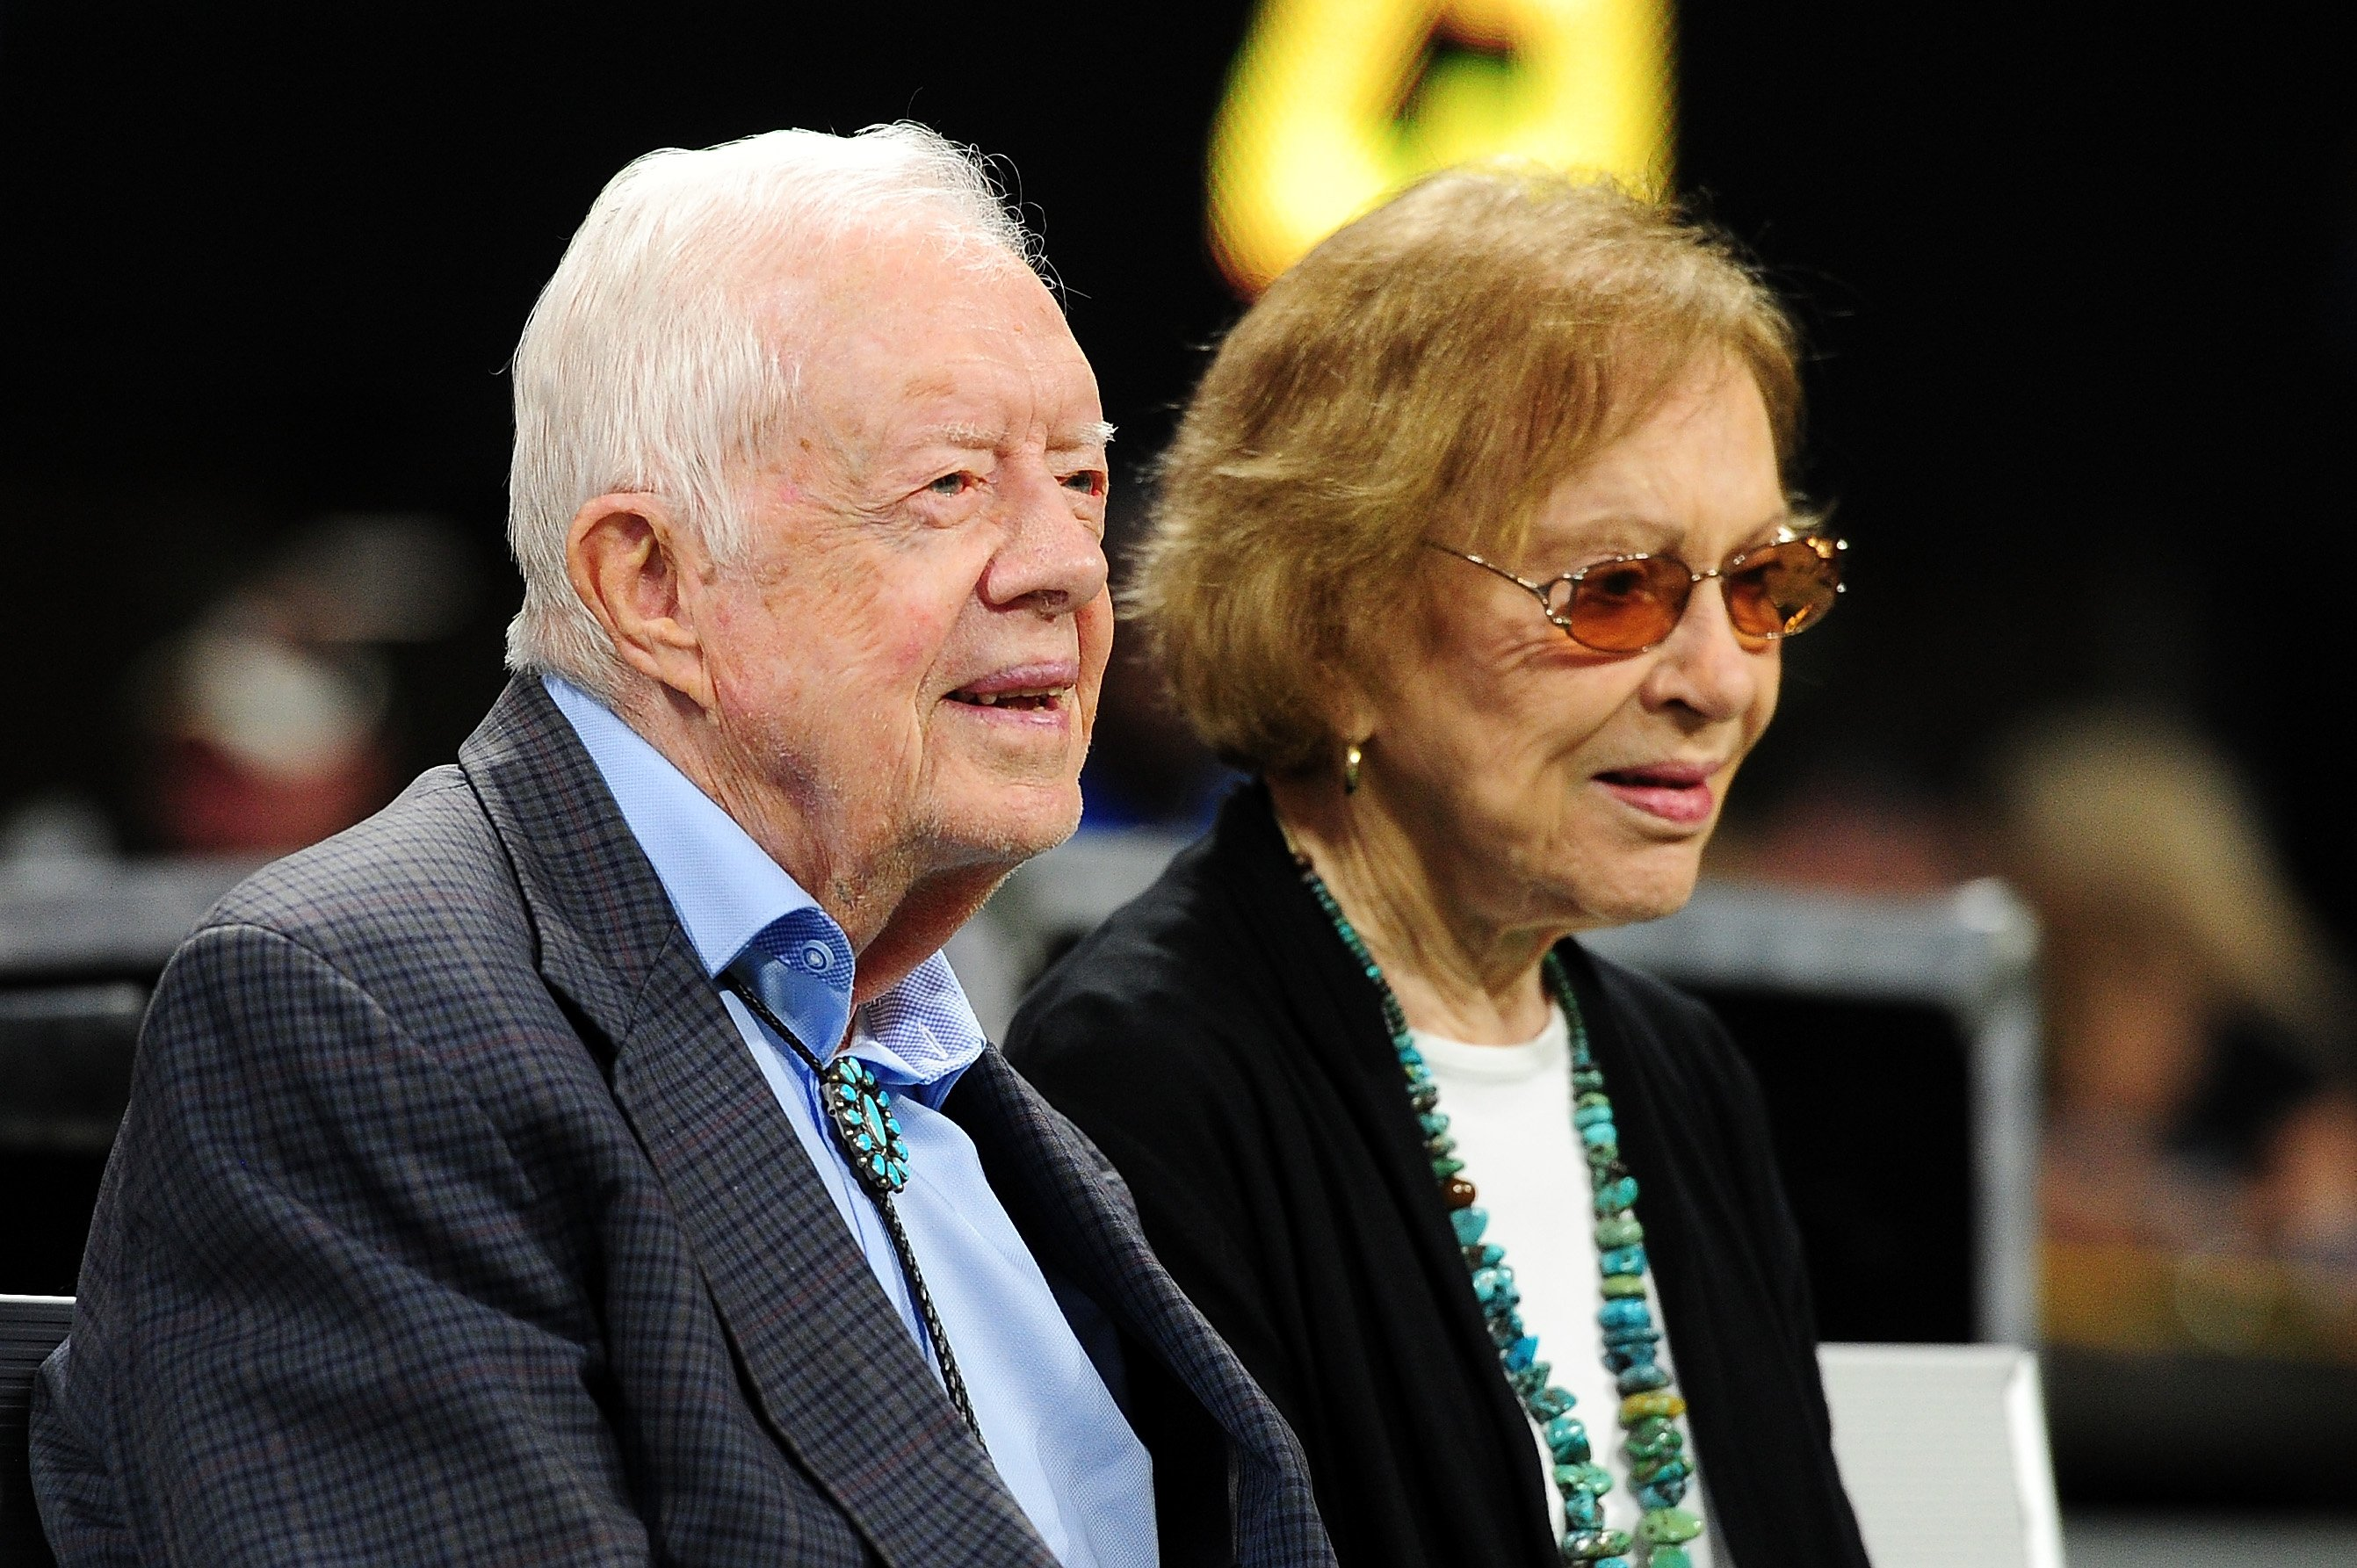 L'ancien président Jimmy Carter et son épouse Rosalynn aux Falcon d'Atlanta et aux Bengals de Cincinnati au stade Mercedes-Benz le 30 septembre 2018 à Atlanta, Géorgie | Photo: Getty Images